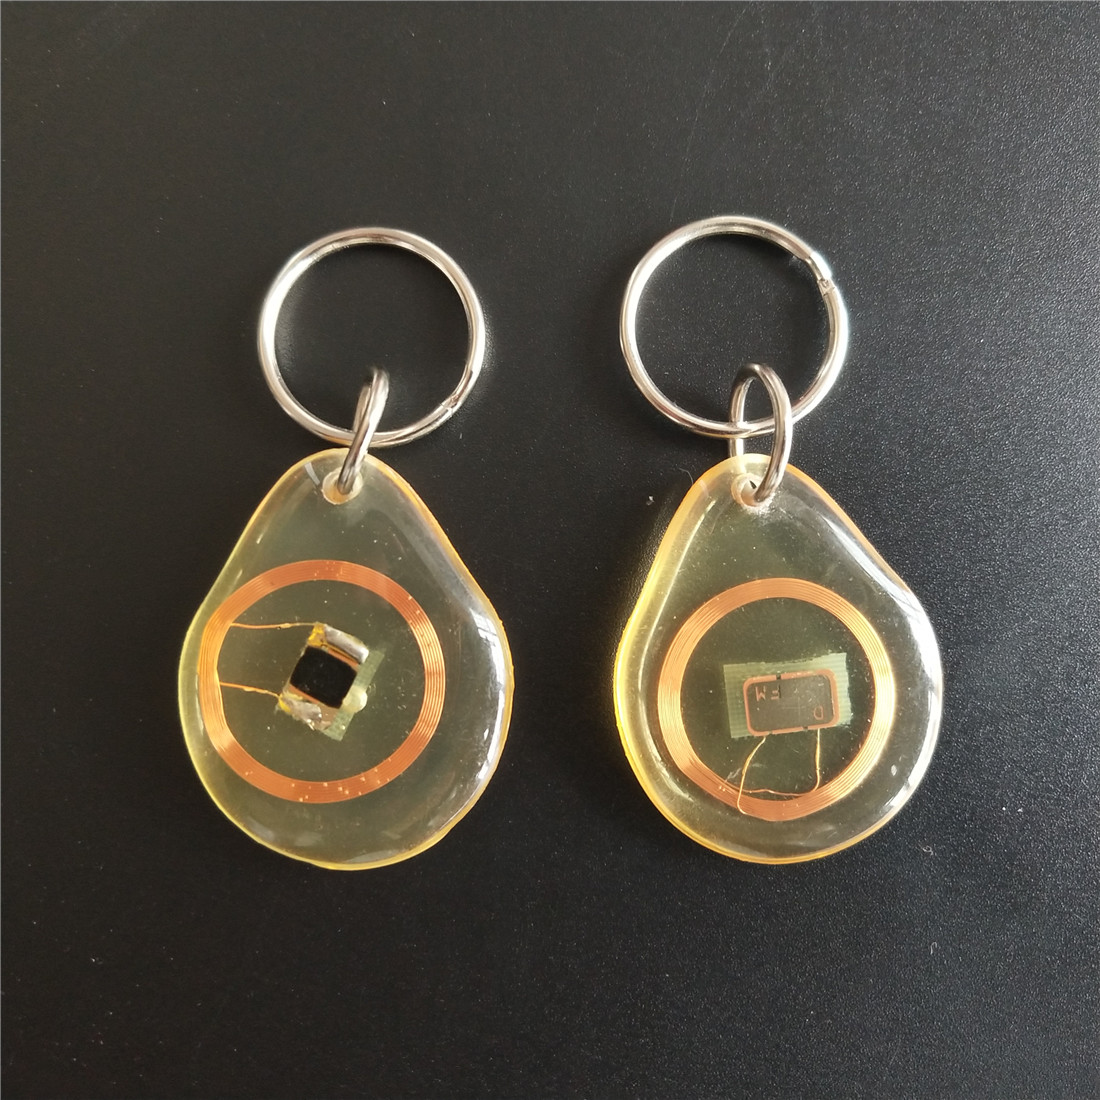 13.56MHZ MF 1K S50 FM11RF08 F08 NFC Transparent Trops of Glue Card RFID Key Tag Key Ring 13 56mhz mf 1k s50 fm11rf08 f08 nfc transparent trops of glue card rfid key tag key ring